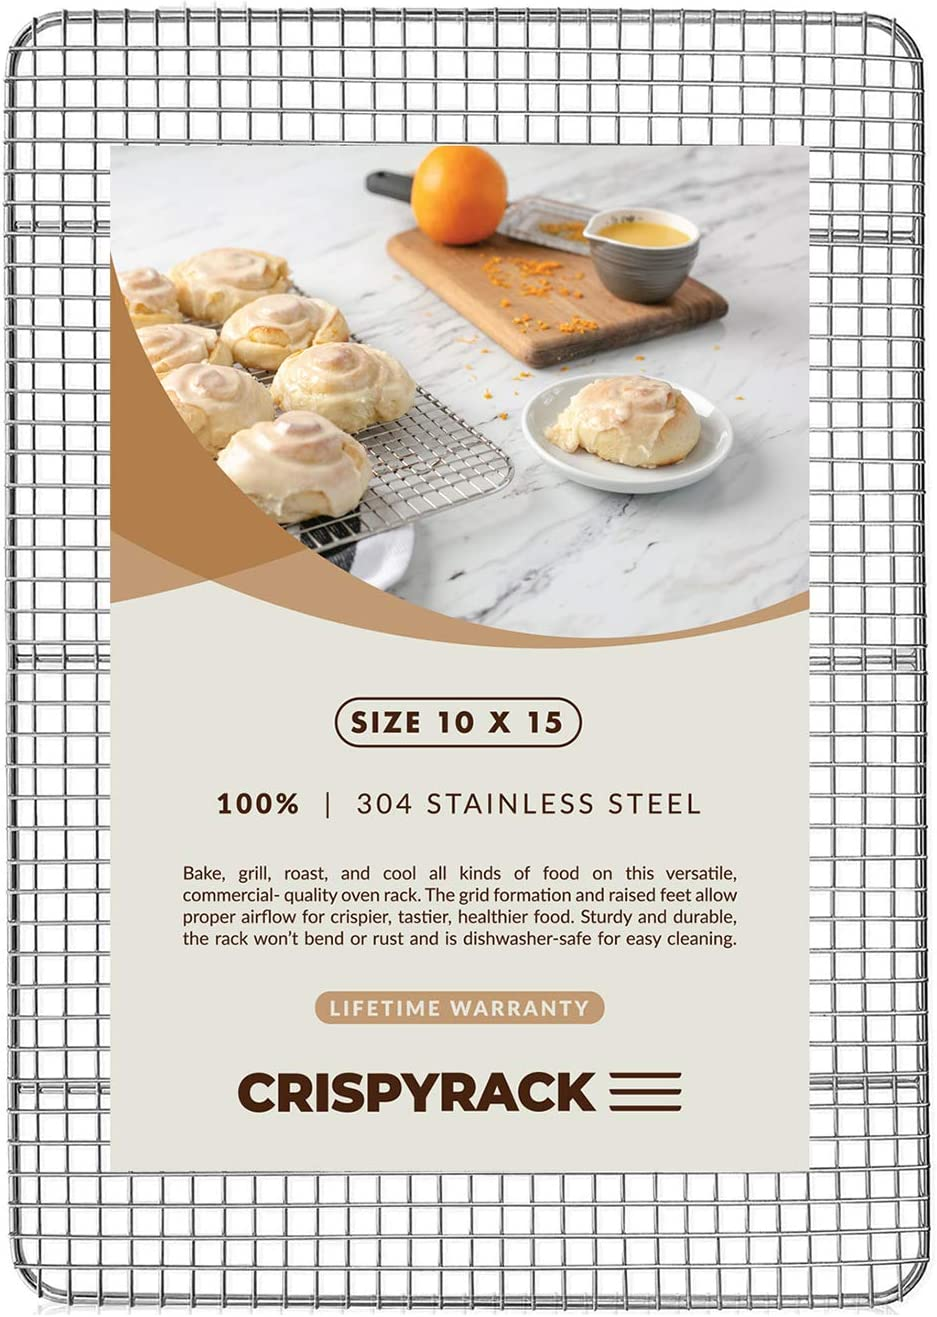 "CrispyRack Heavy Duty 100% 304 Stainless Steel Wire Rack For Cooking, Roasting, Drying, and Grilling. Rack Fits Jelly Roll Sheet Size Baking Pan, Oven Safe, Commercial Quality, 10"" X 15"""